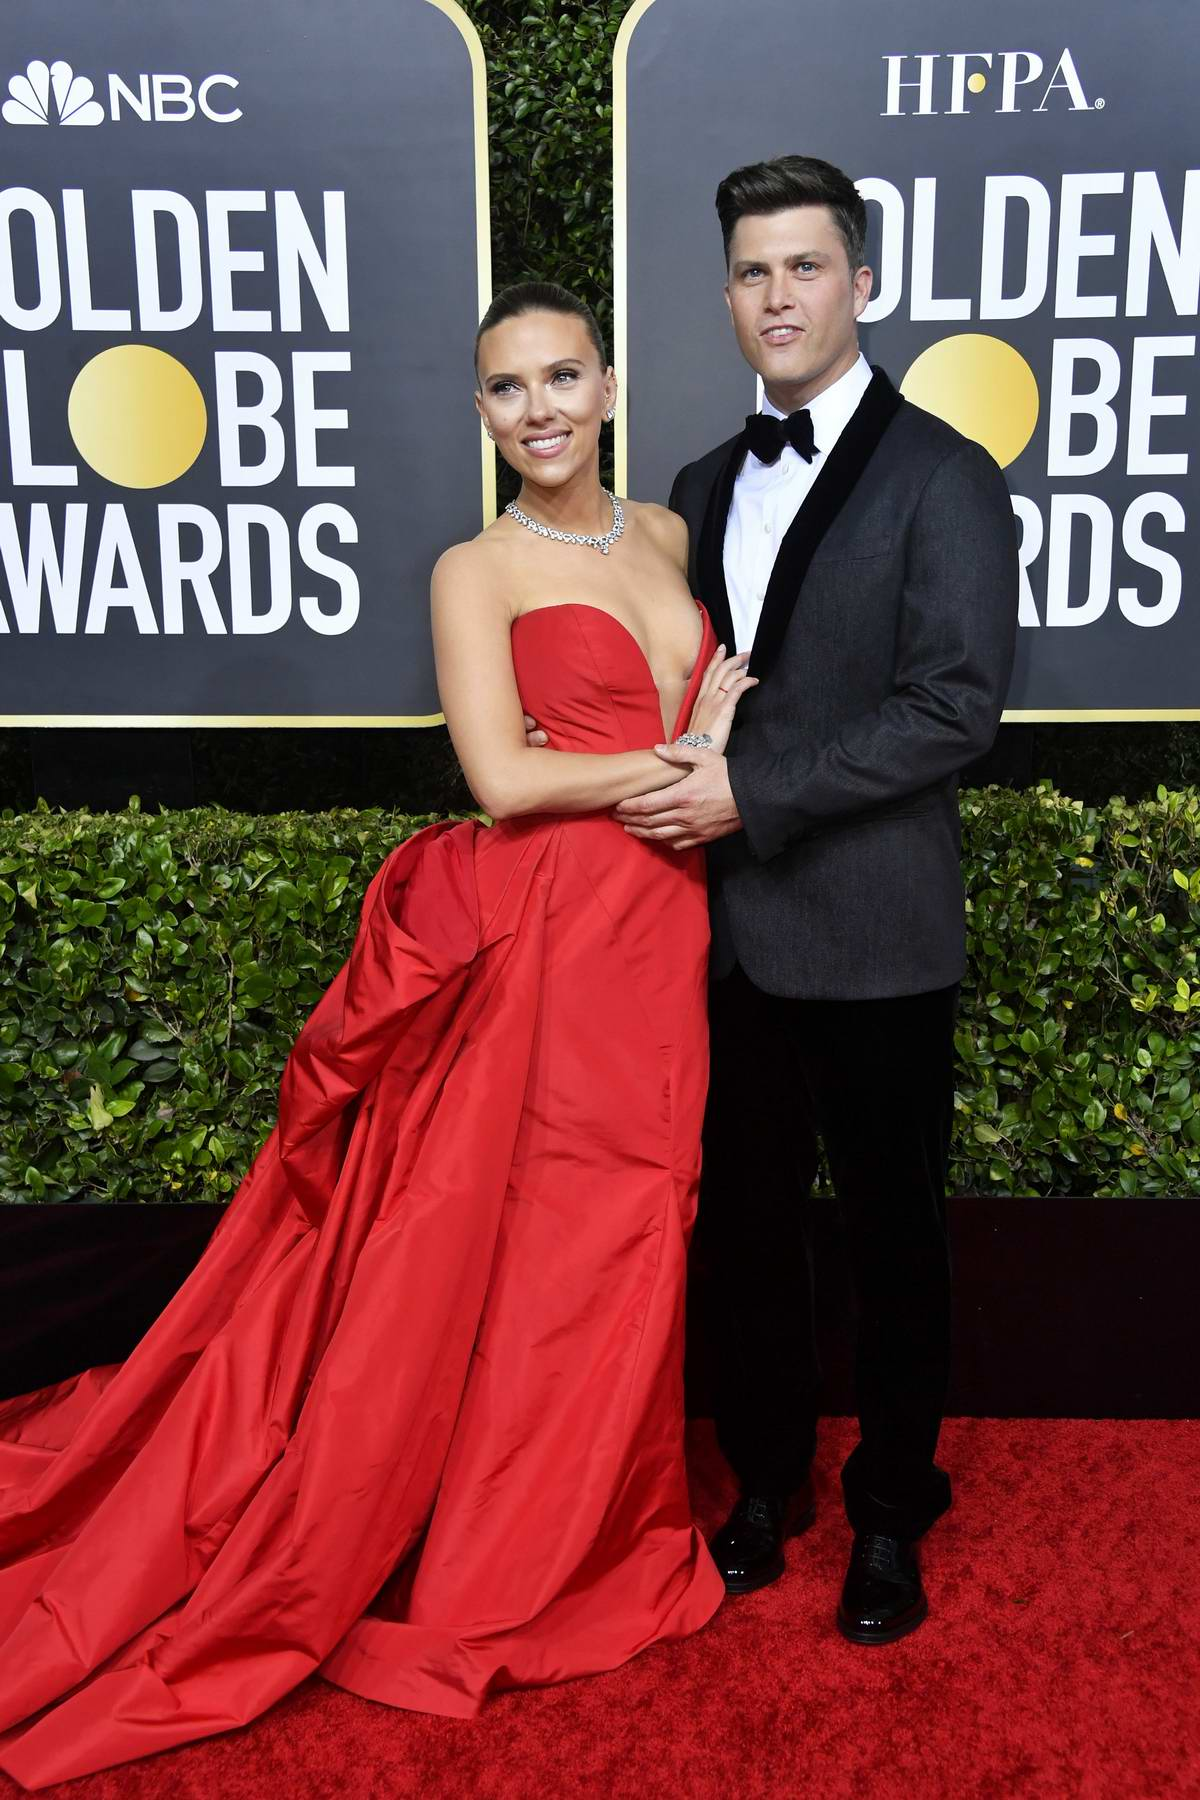 Scarlett Johansson attends the 77th Annual Golden Globe Awards at The Beverly Hilton Hotel in Beverly Hills, California